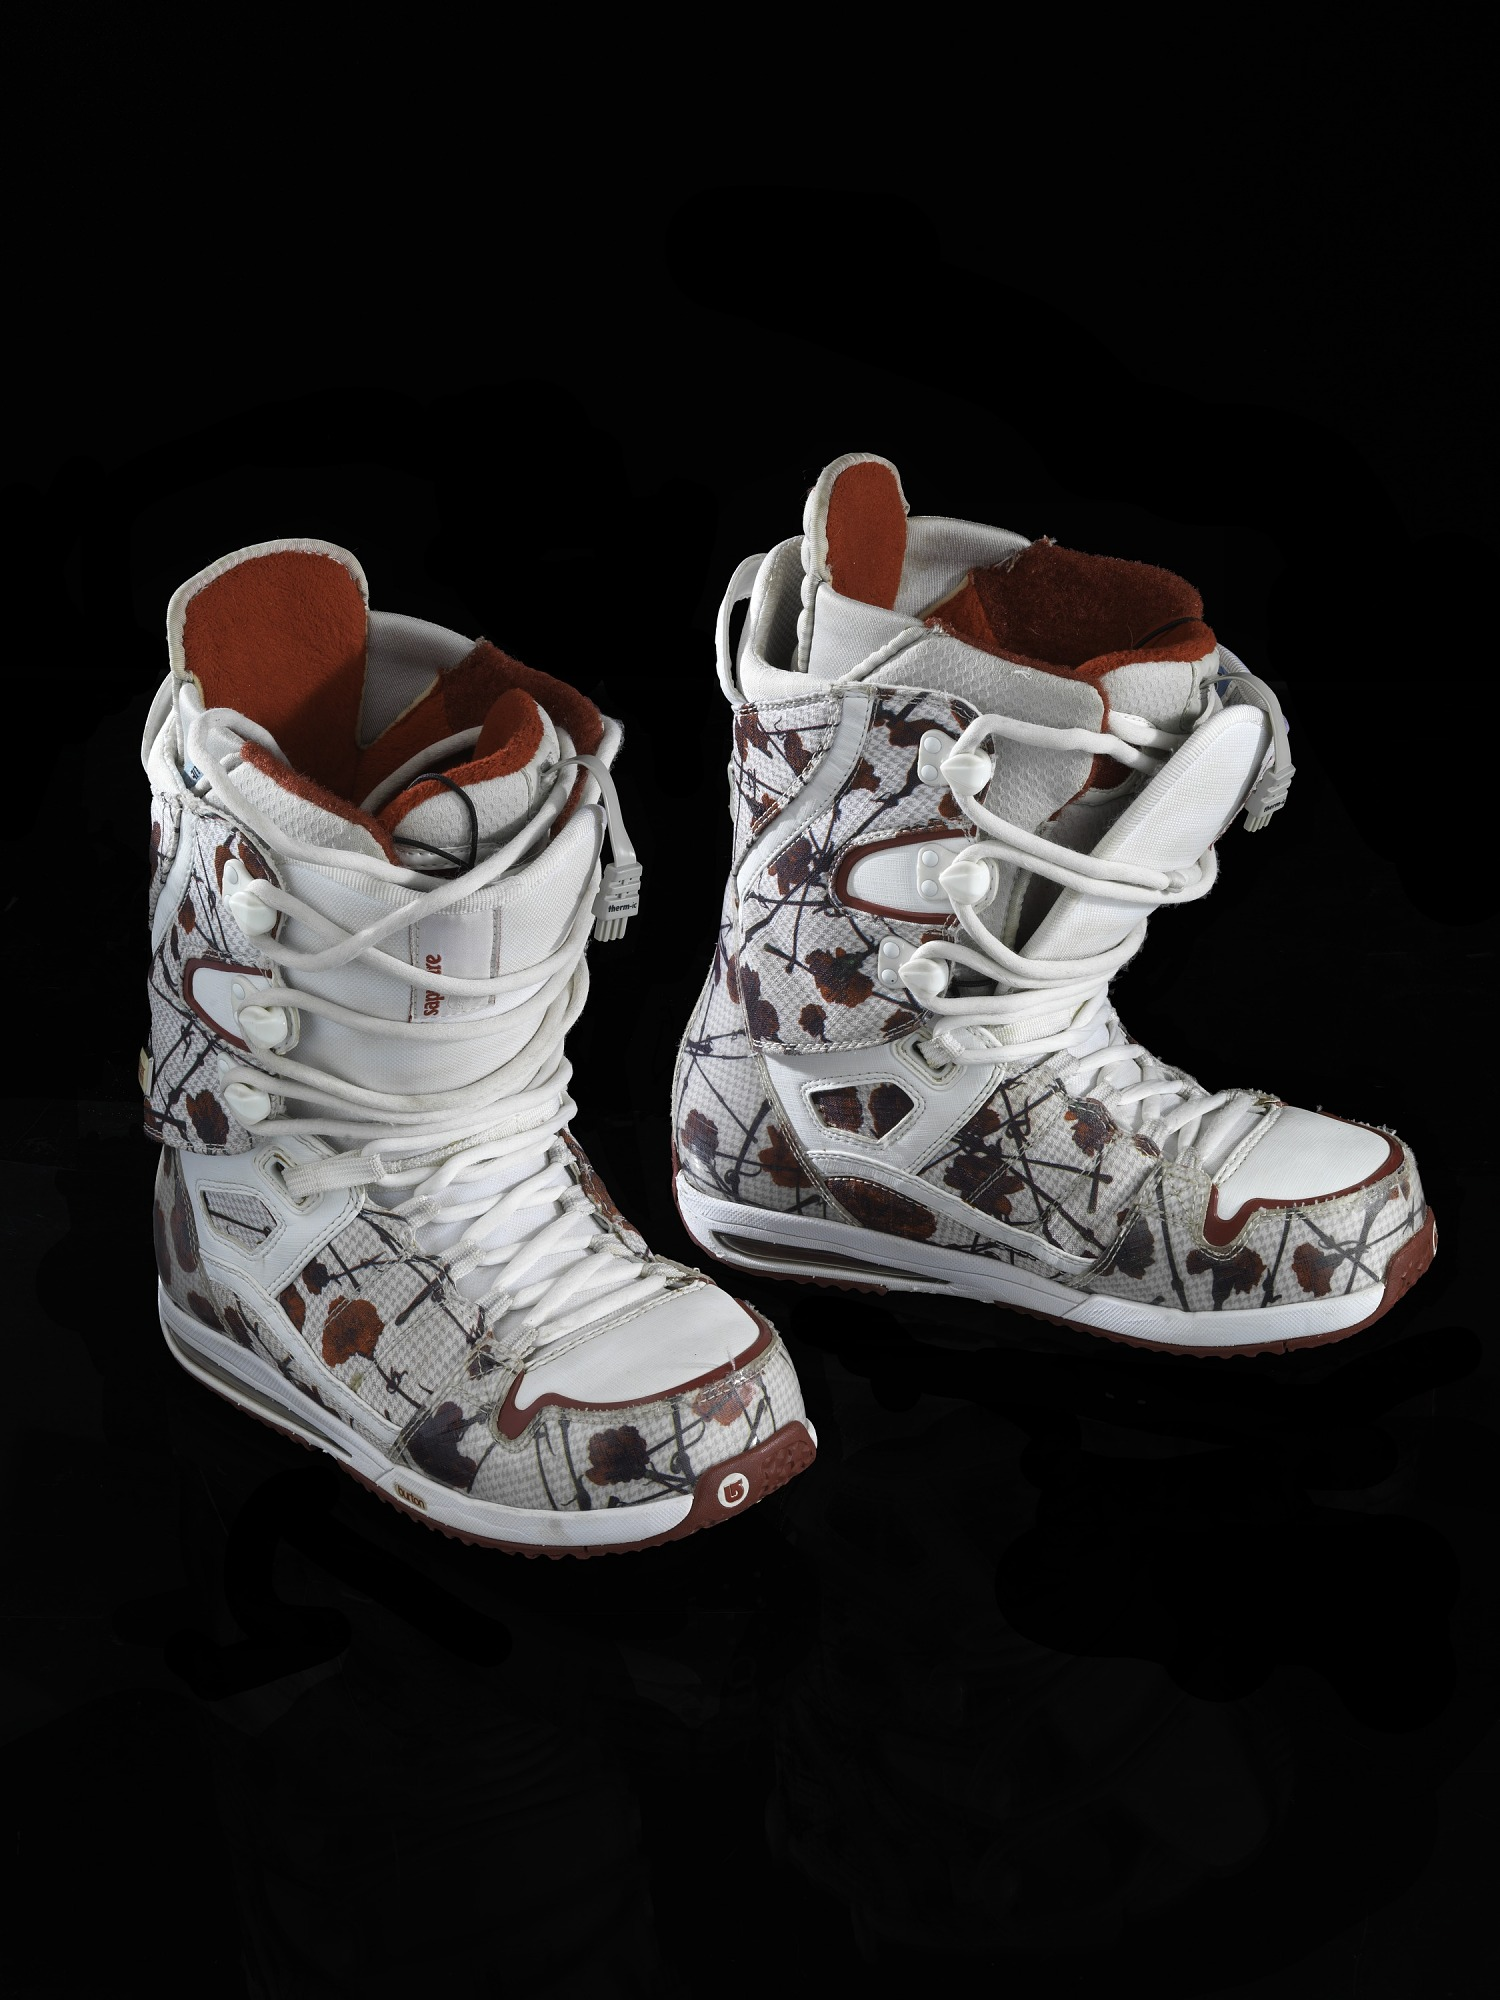 images for Snowboard boots worn by Hannah Teter during the 2010 Winter Olympic Games